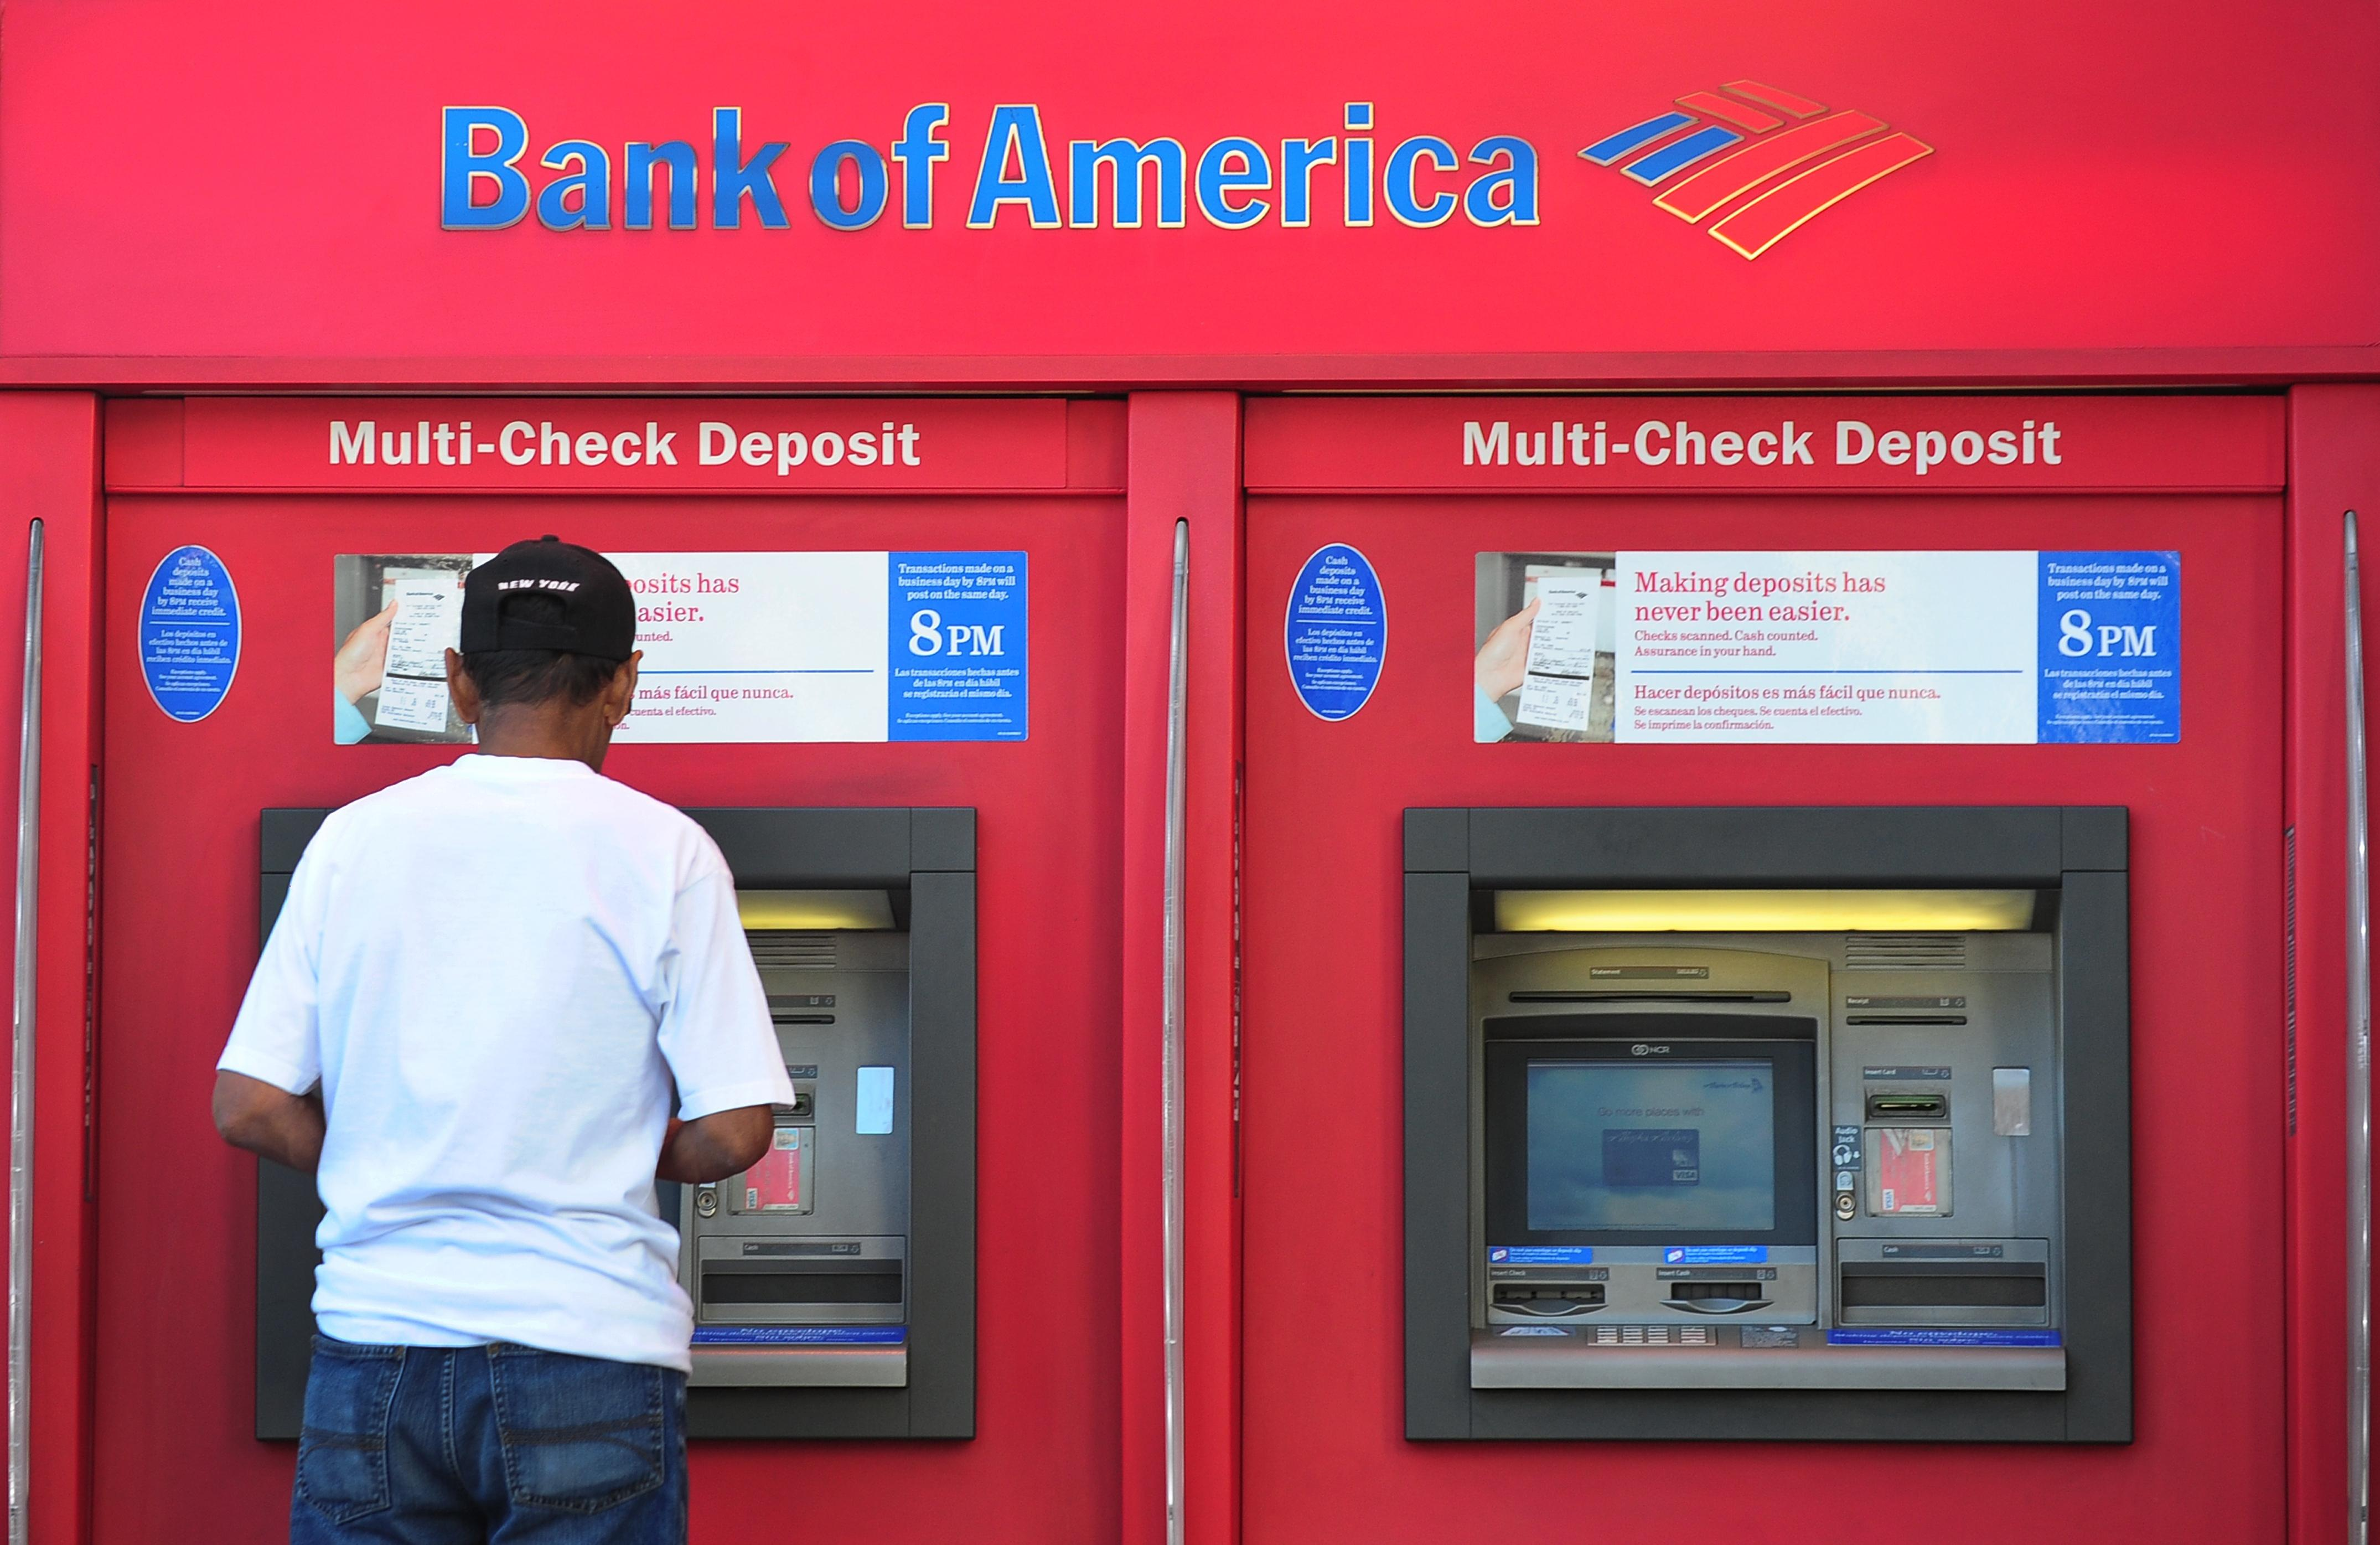 US-BANKING-HOUSING-FINANCE-BOFA-FRAUD